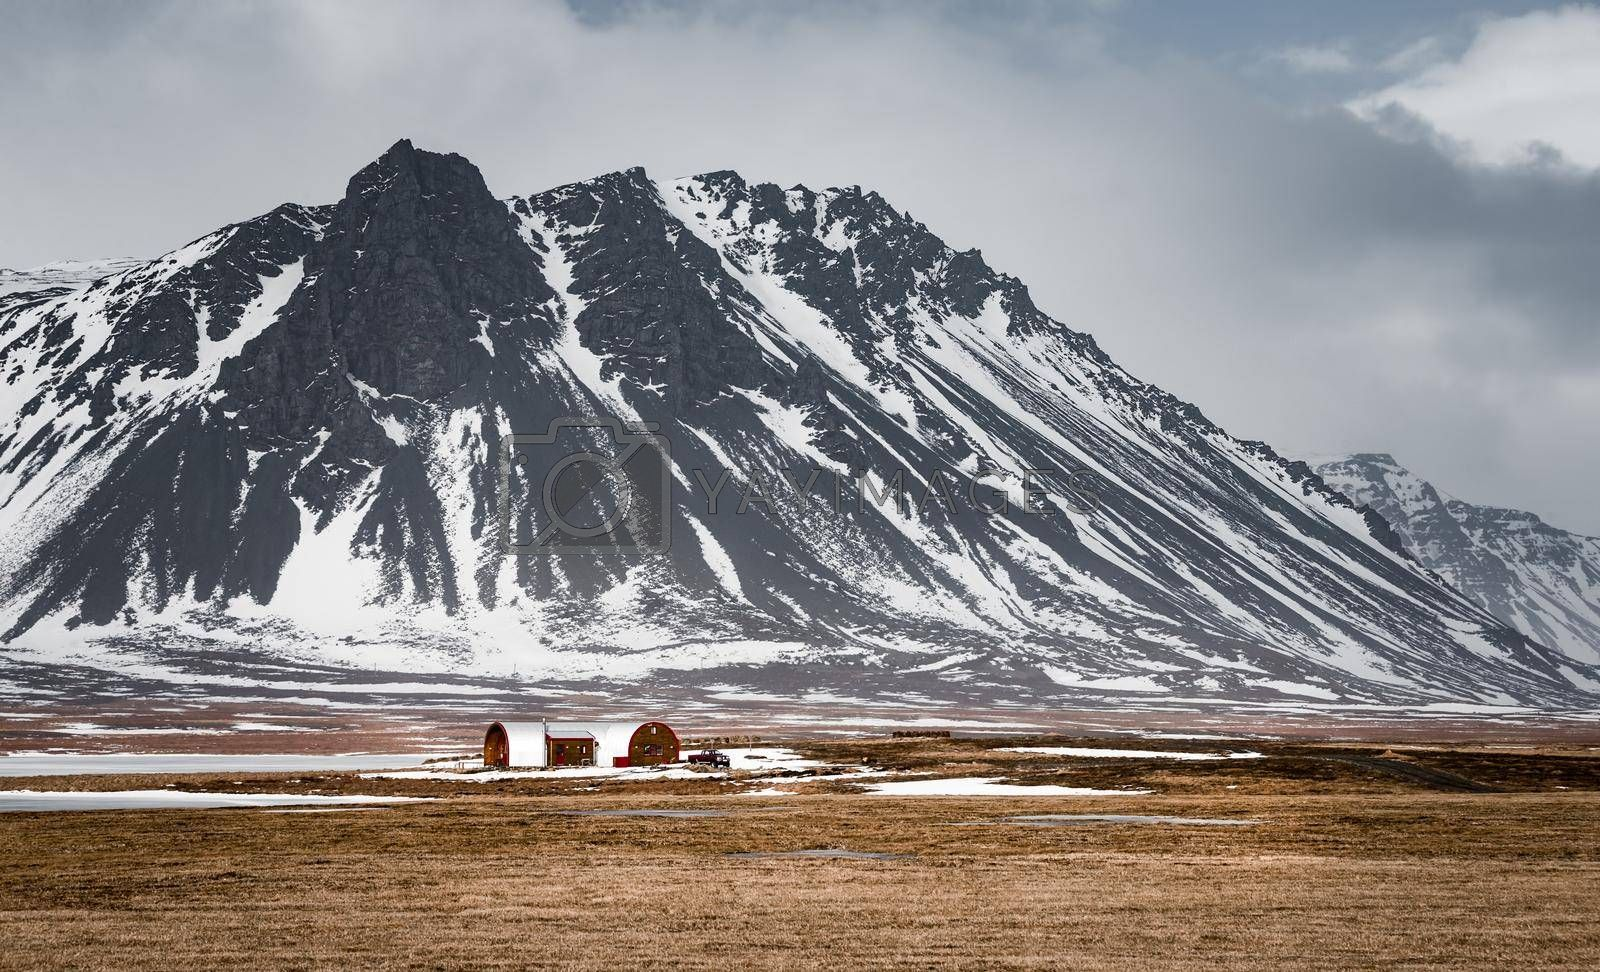 Amazing Winter View on the Snowy High Mountains. Extreme Nature Travel Destination. Picturesque Landscape of Icelandic Lands.